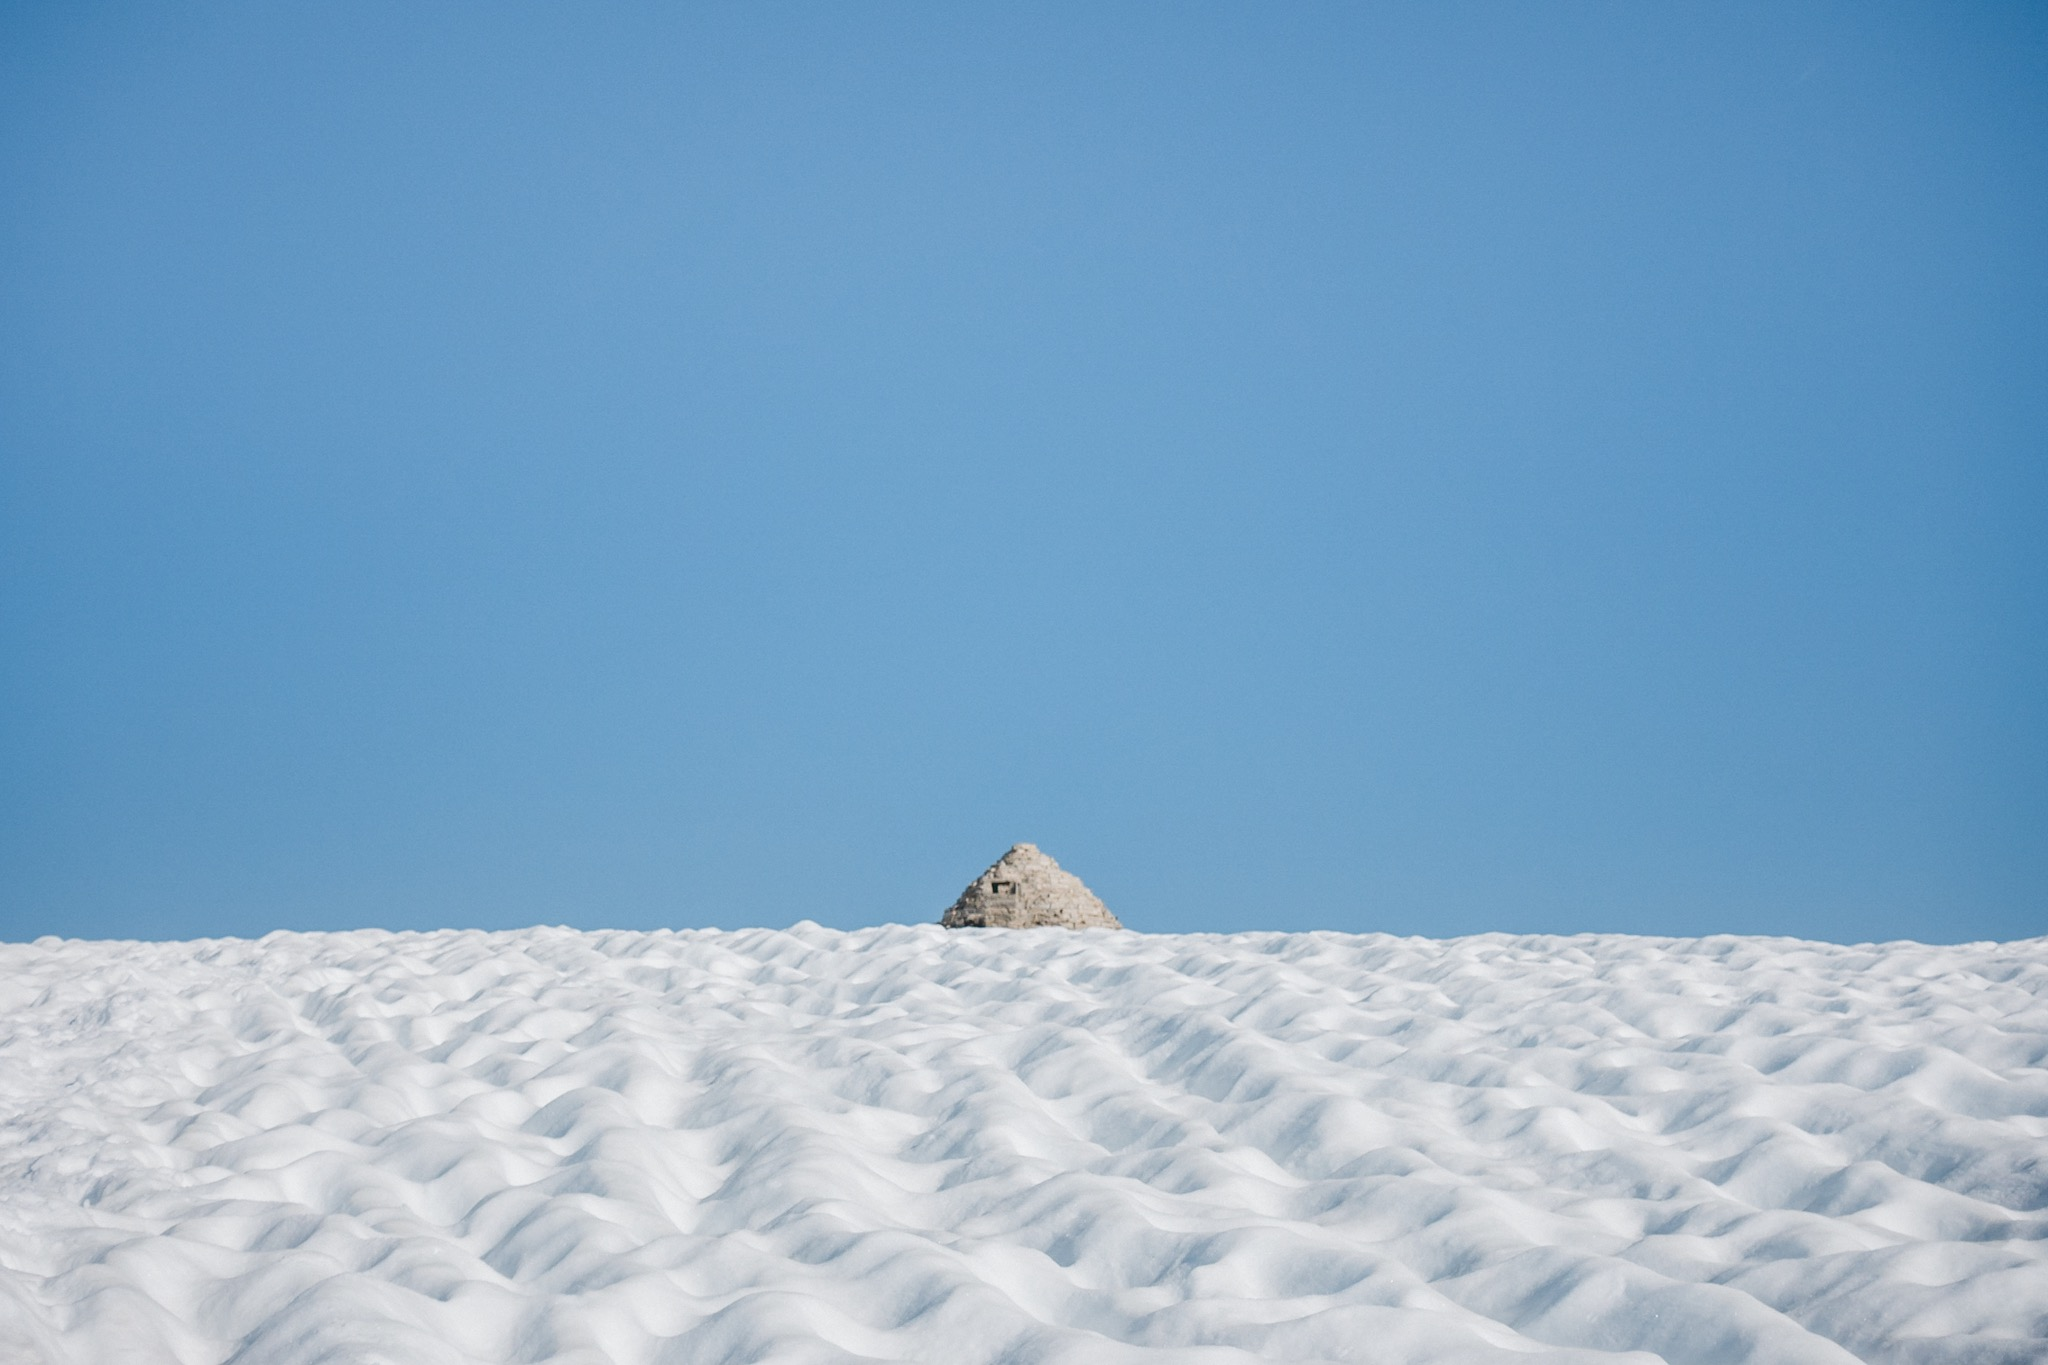 The sweet sight of the Muir Hut.